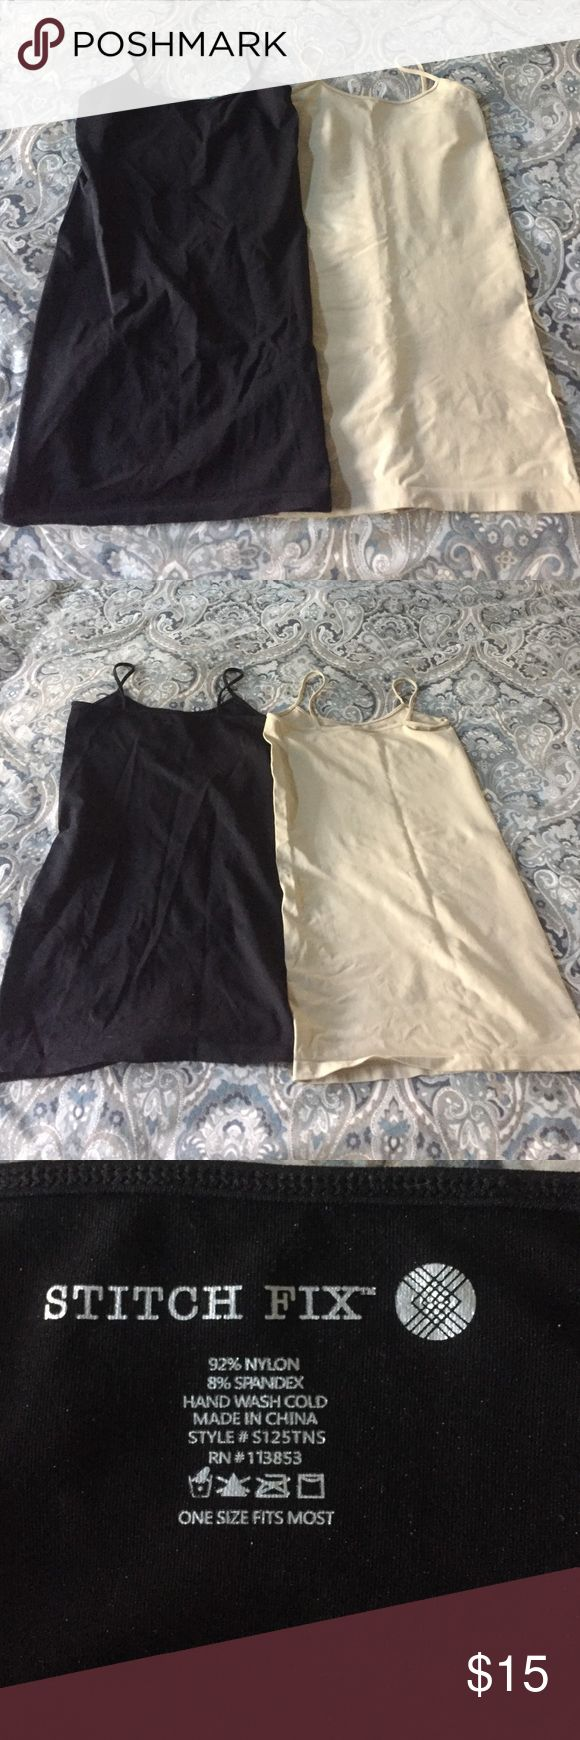 Stitch fix maternity camis Super soft maternity camis from stitch fix. Great for layering under shirts. One size. Never worn (I forgot I had them!) stitch fix Other